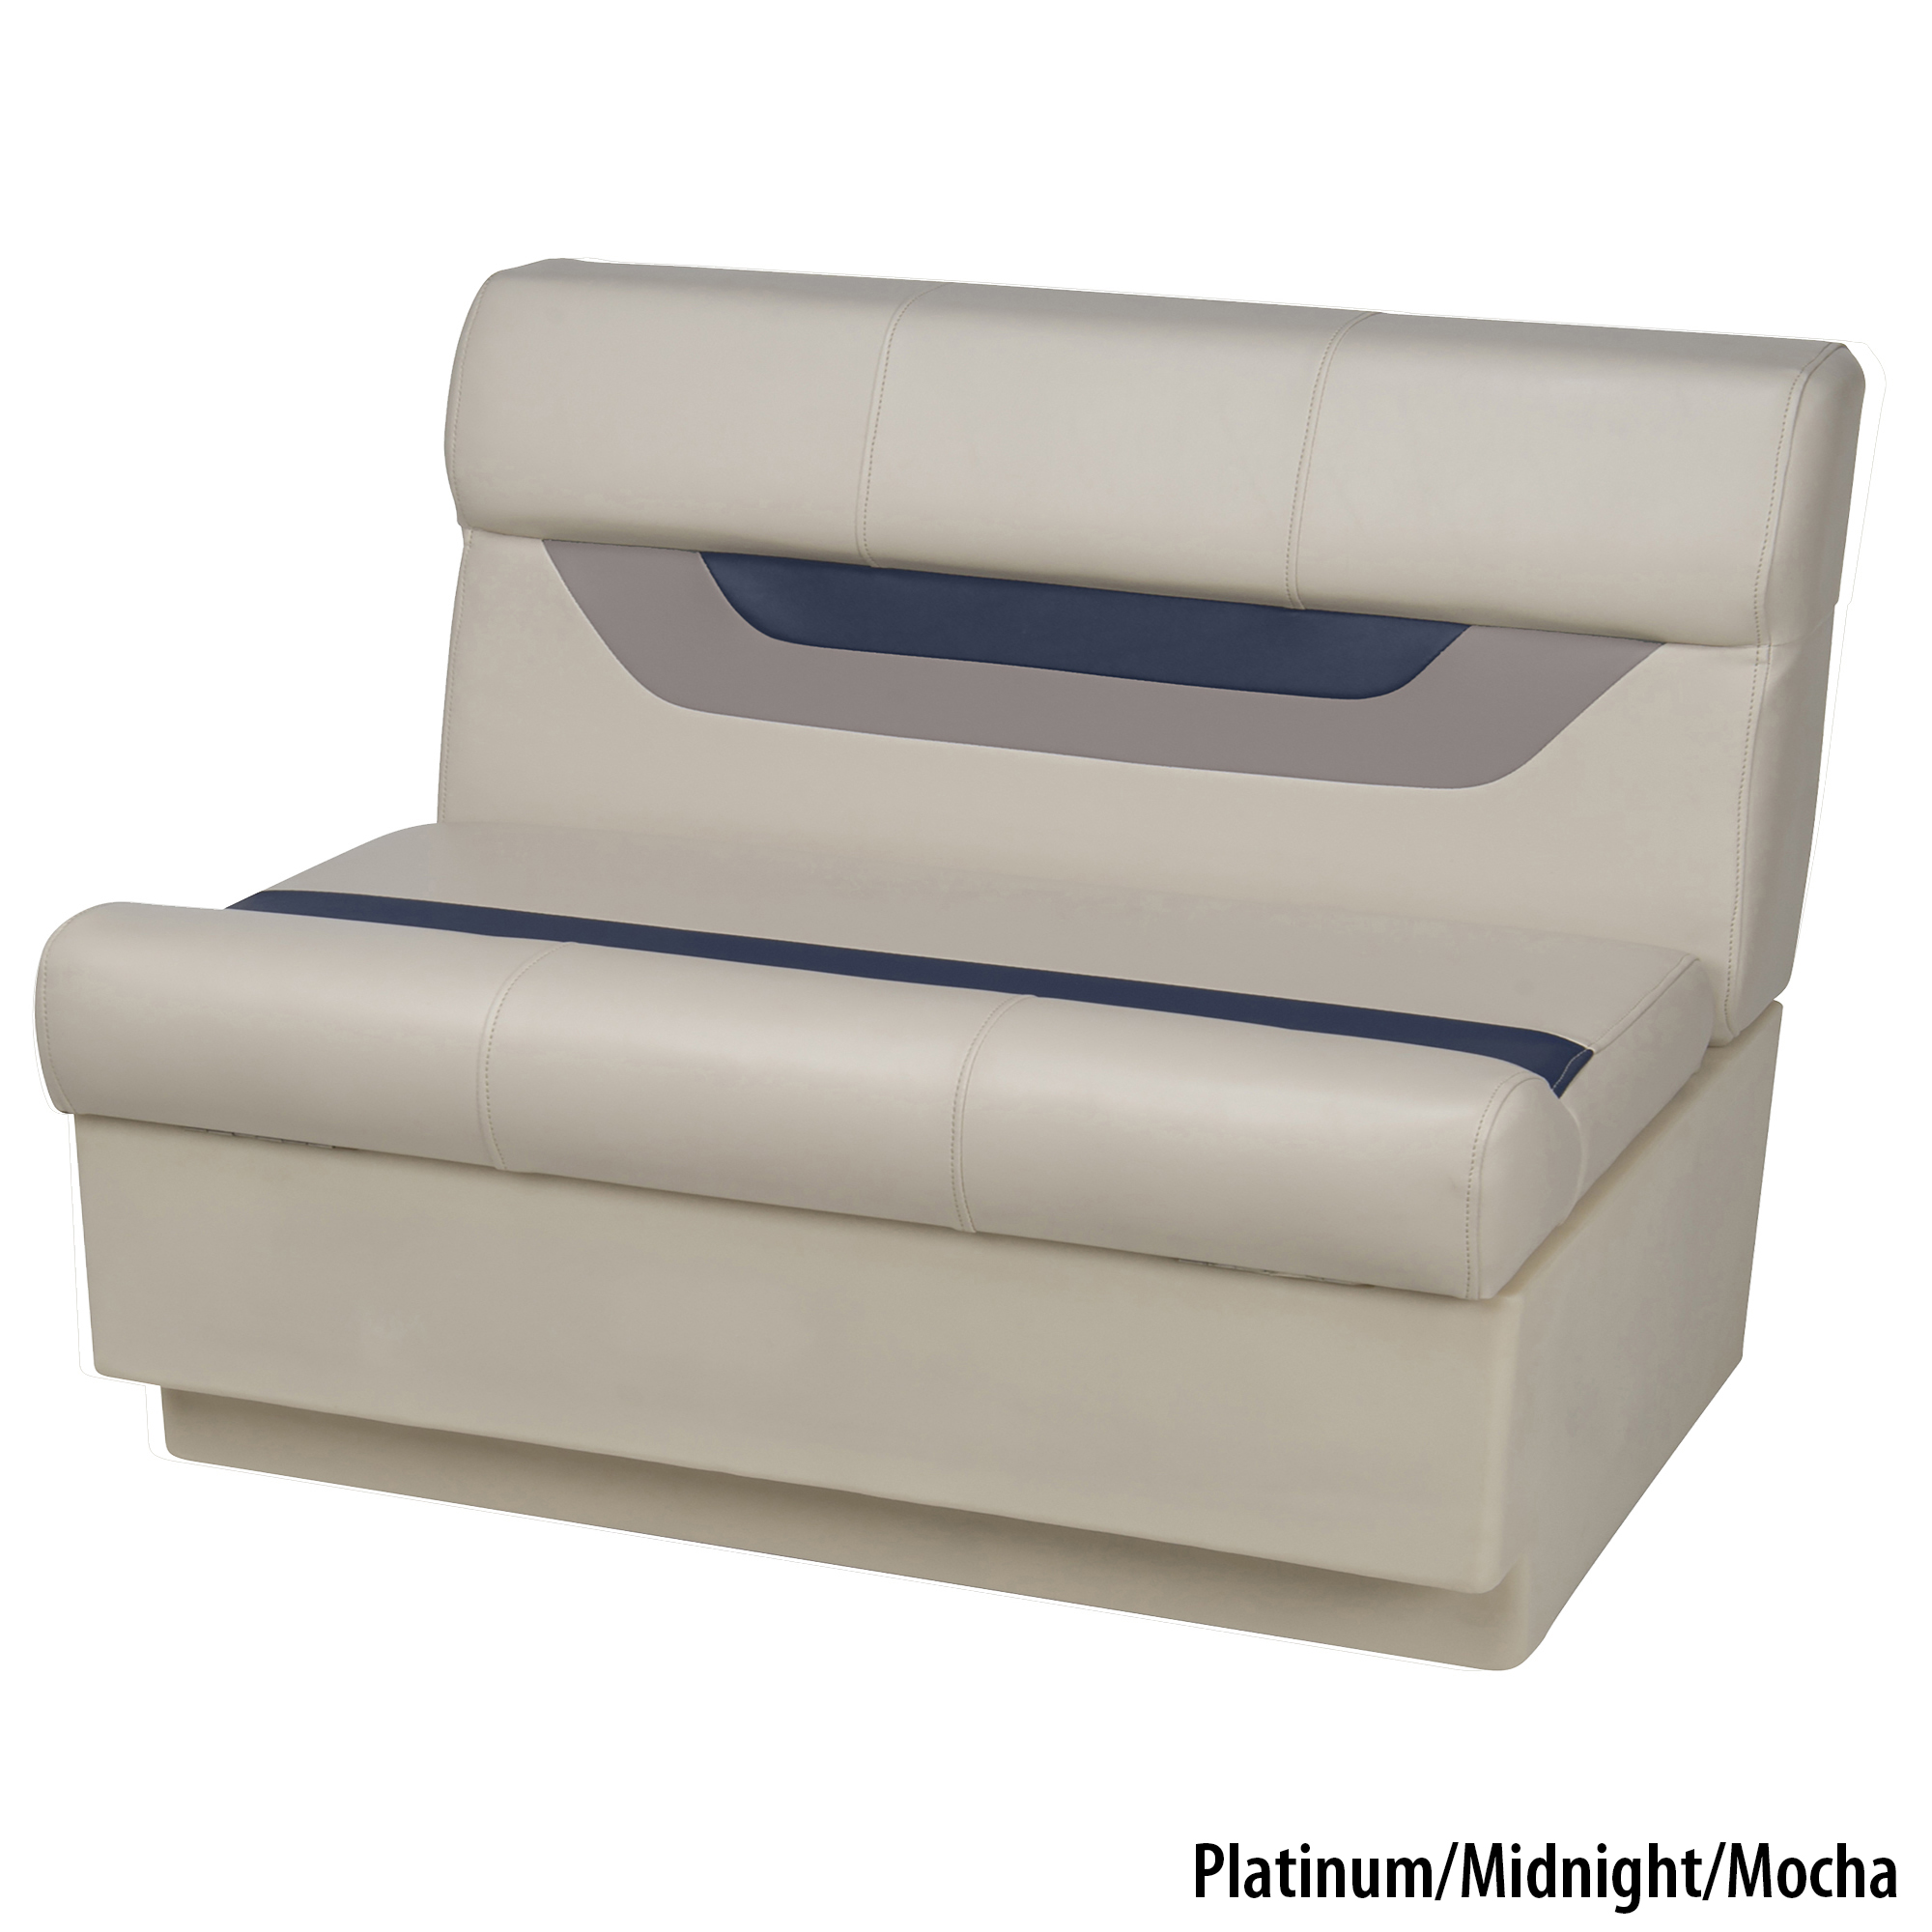 "Toonmate Designer Pontoon 36"" Wide Bench Seat, Platinum"